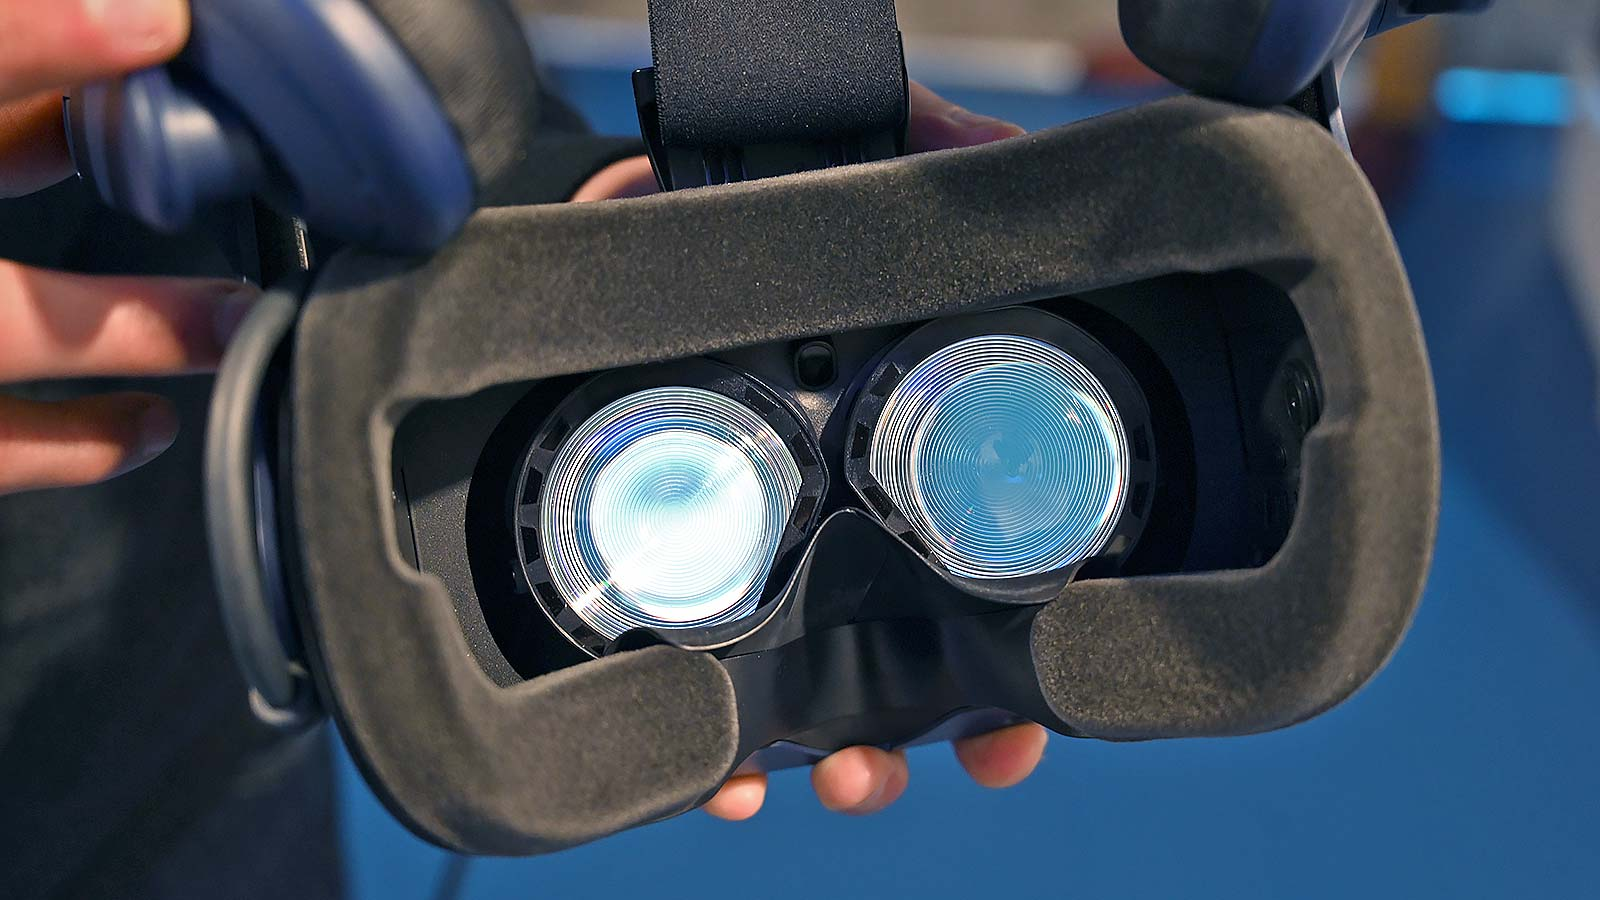 You can see the Vive Pro Eye's built-in eye tracker wedged between the headset's two lenses.